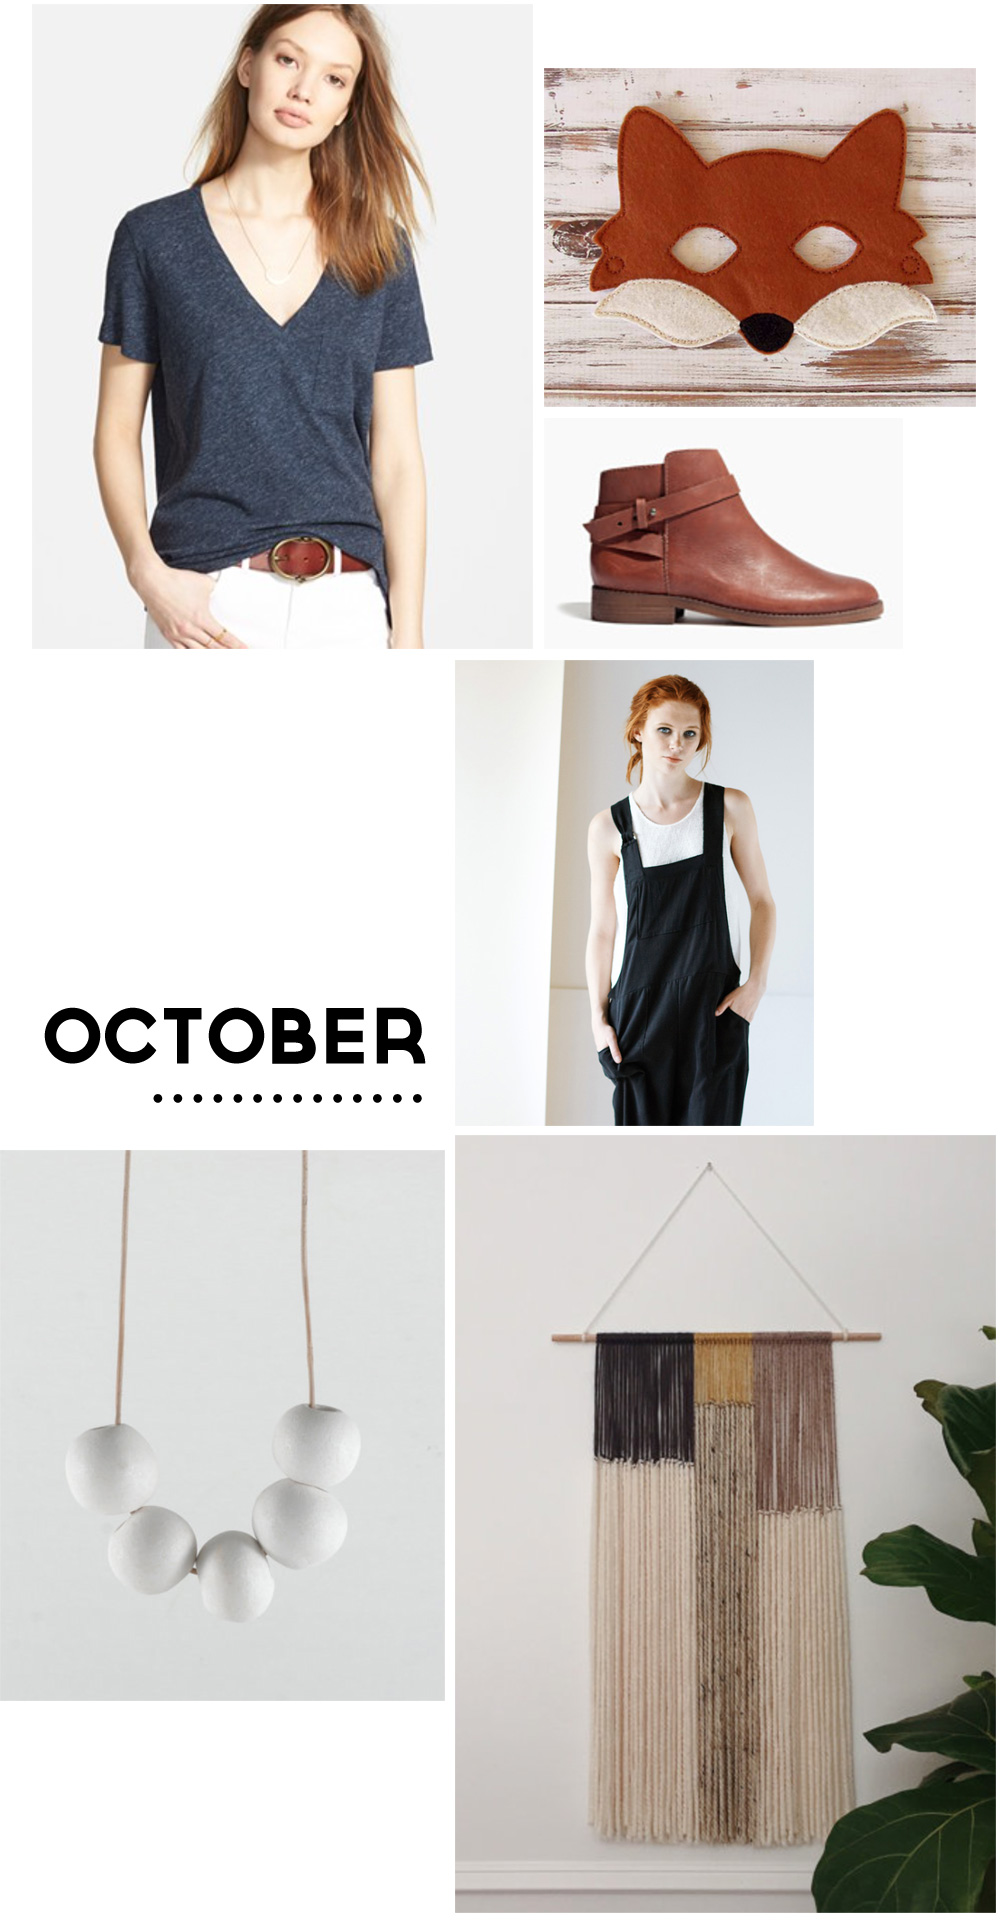 October Inspiration Board